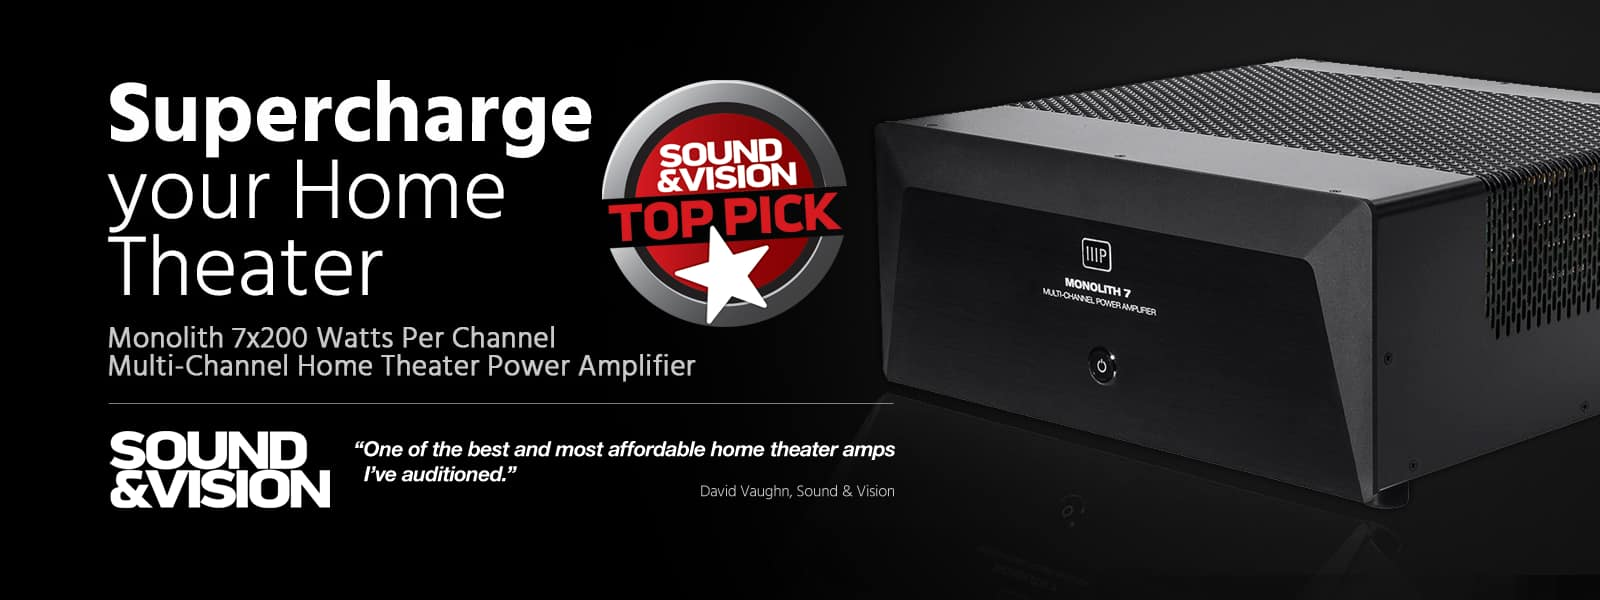 Monoprice Monolith 7x200 Watts Per Channel Multi-Channel Home Theater Power Amplifier $1199 plus ship with code CRAZY